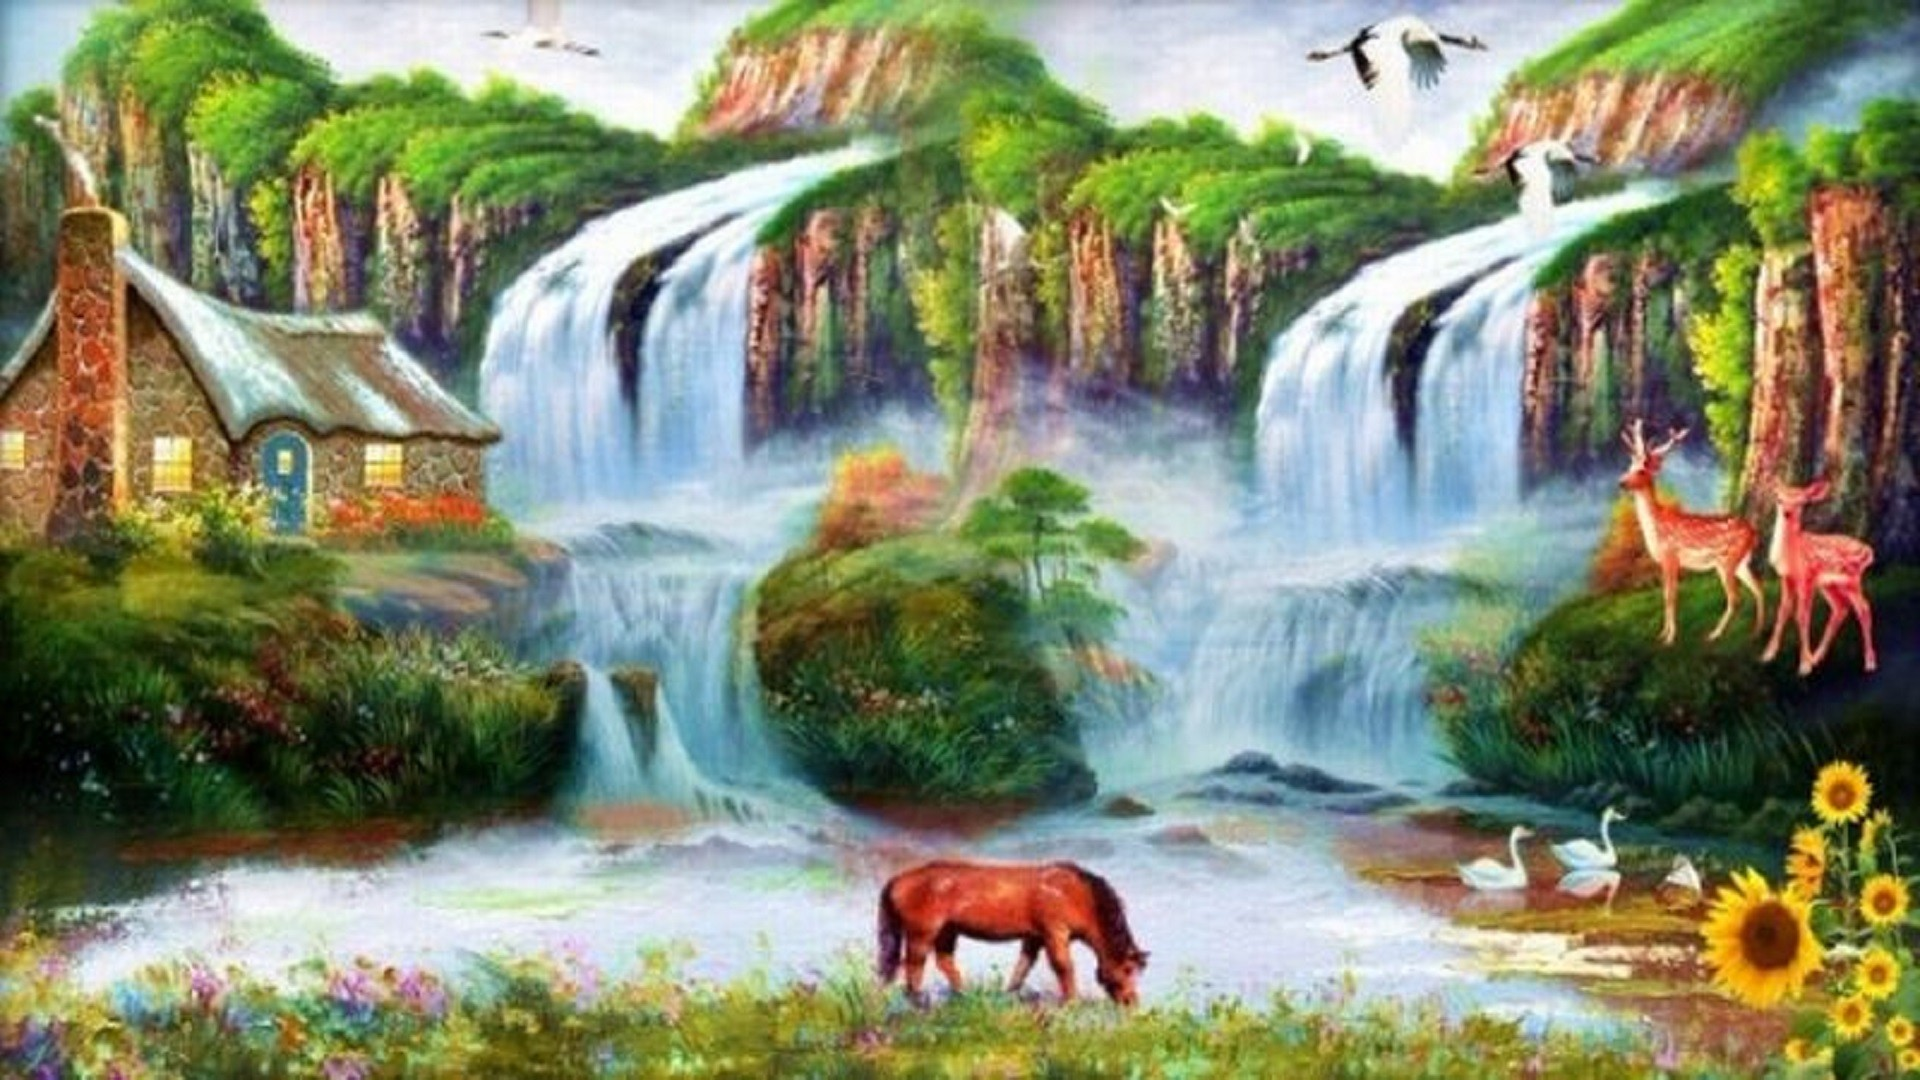 Res: 1920x1080, Beauty-nature-water-fall-hd-wallpapers-for-desktop